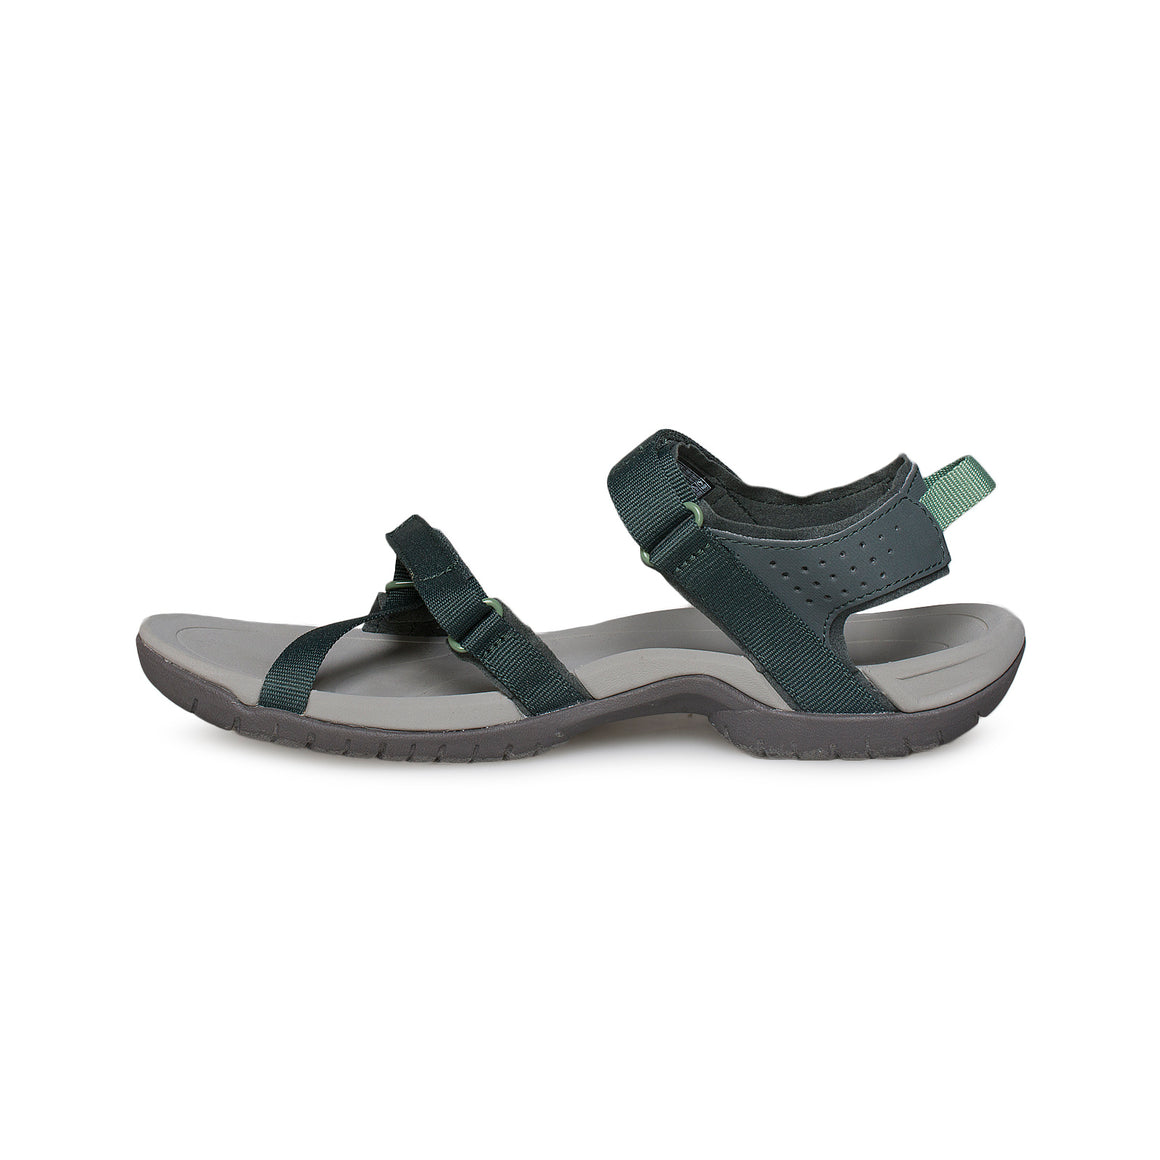 Teva Verra Darkest Spruce Sandals - Women's